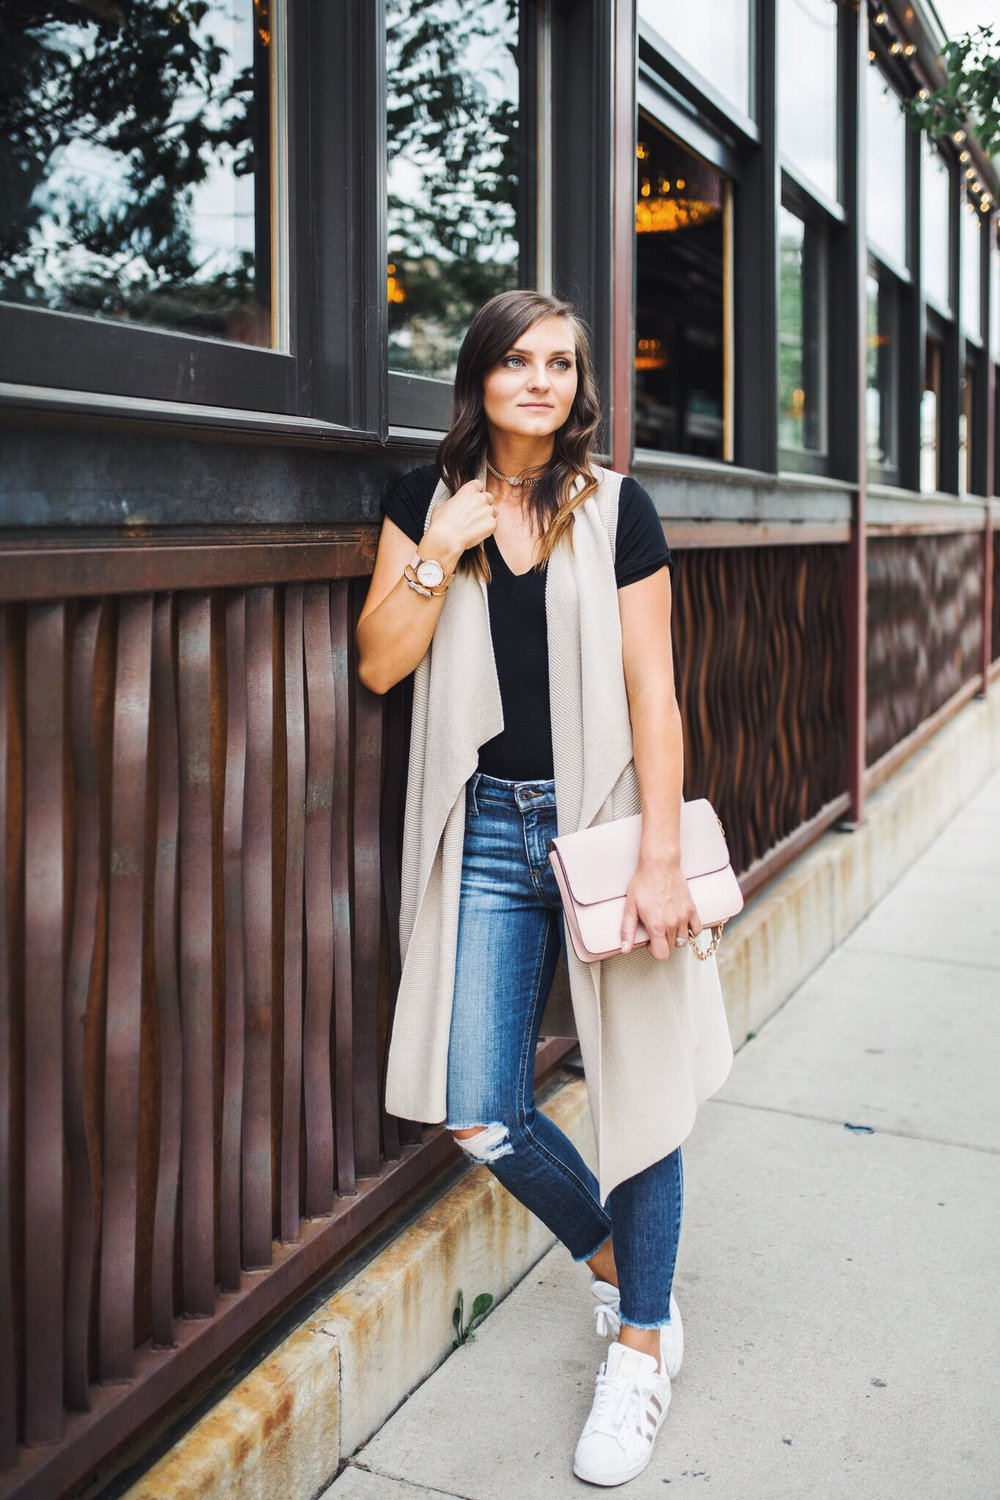 """<img src = """"two-ways-to-wear-a-simple-black-tee.jpg"""" alt =""""Denver-fashion-blogger-shows-how-to-style-a-simple-black-tee-worn-with-a-long-sweater-knit-vest-joes-jeans-blondie-destroyed-ankle-skinny-jeans-coppola-and-adidas-superstars-rose-gold"""">"""